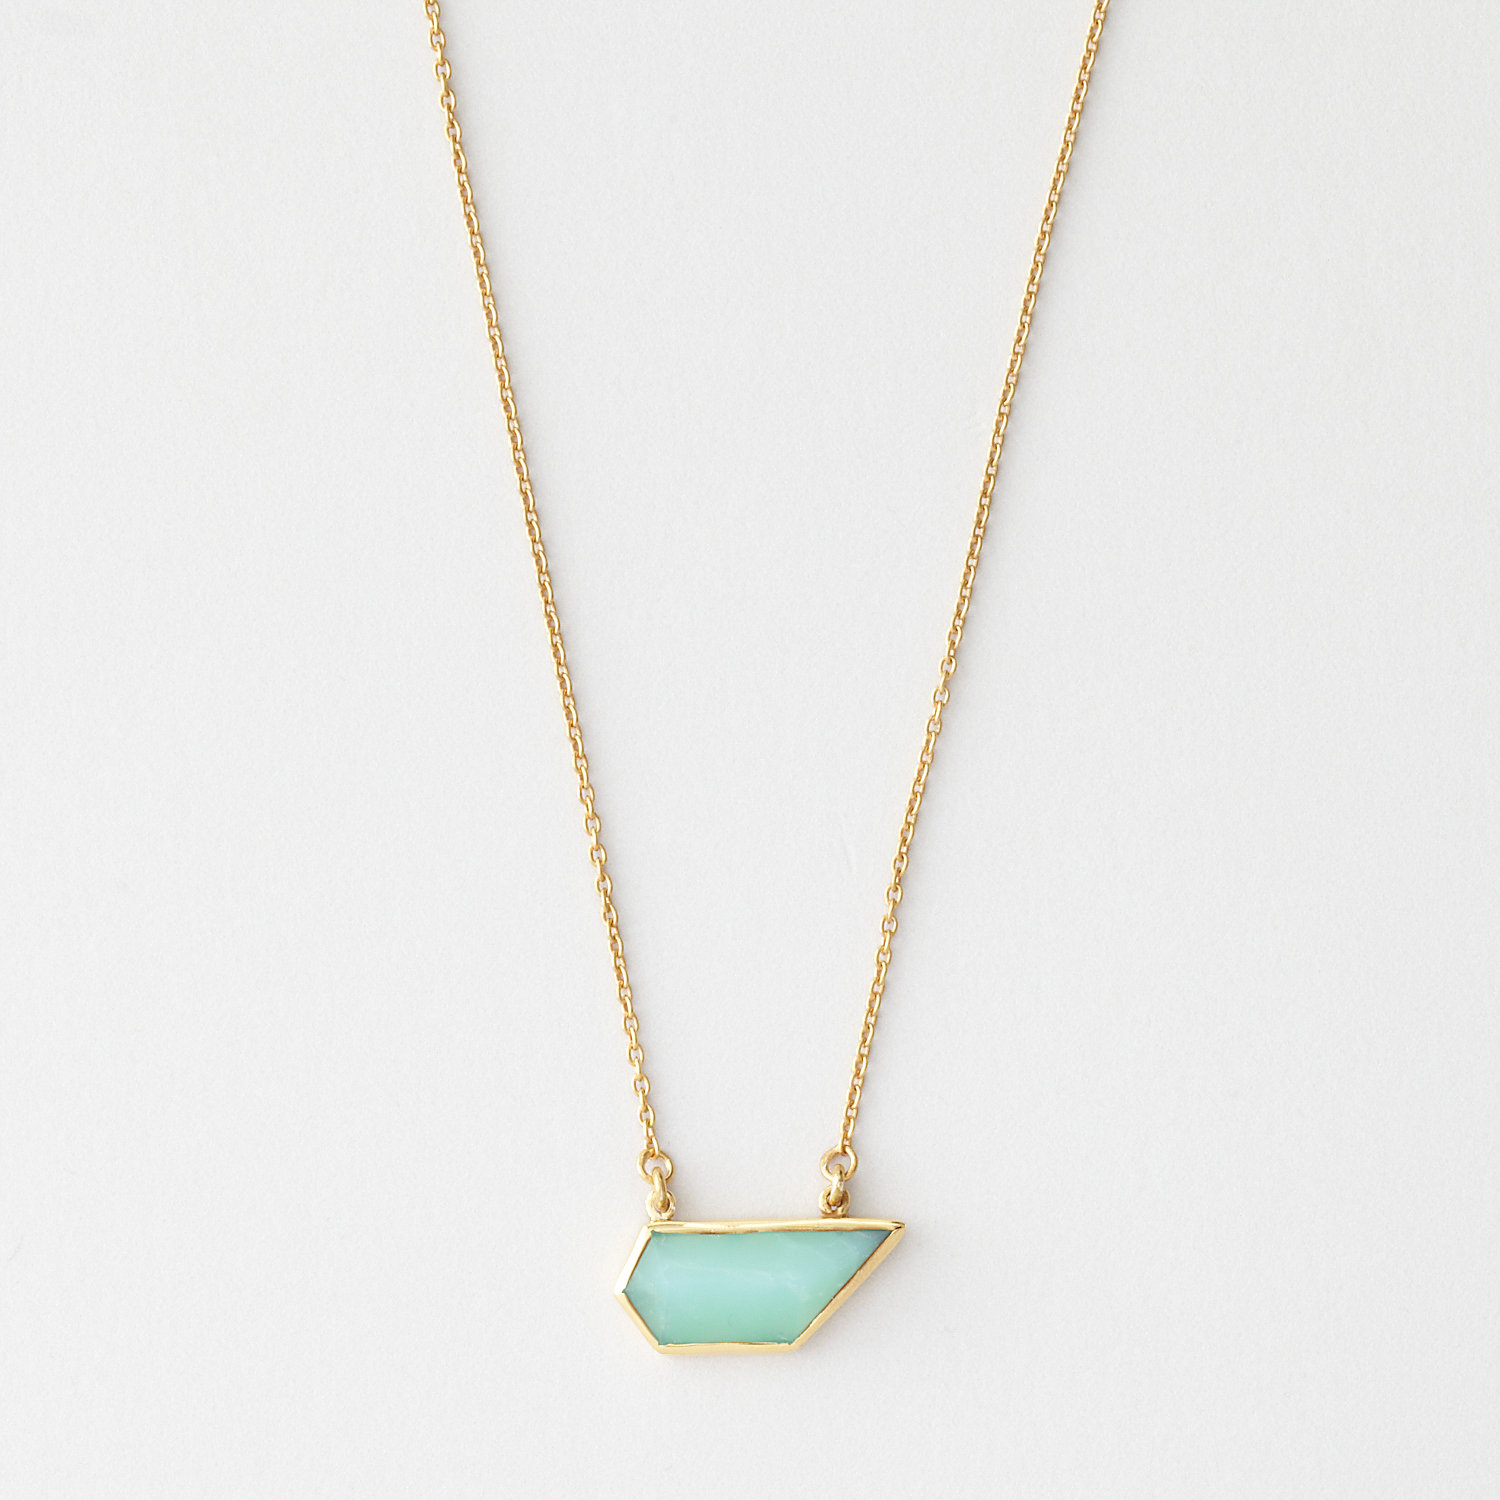 STELLA CHRYSOPHASE NECKLACE